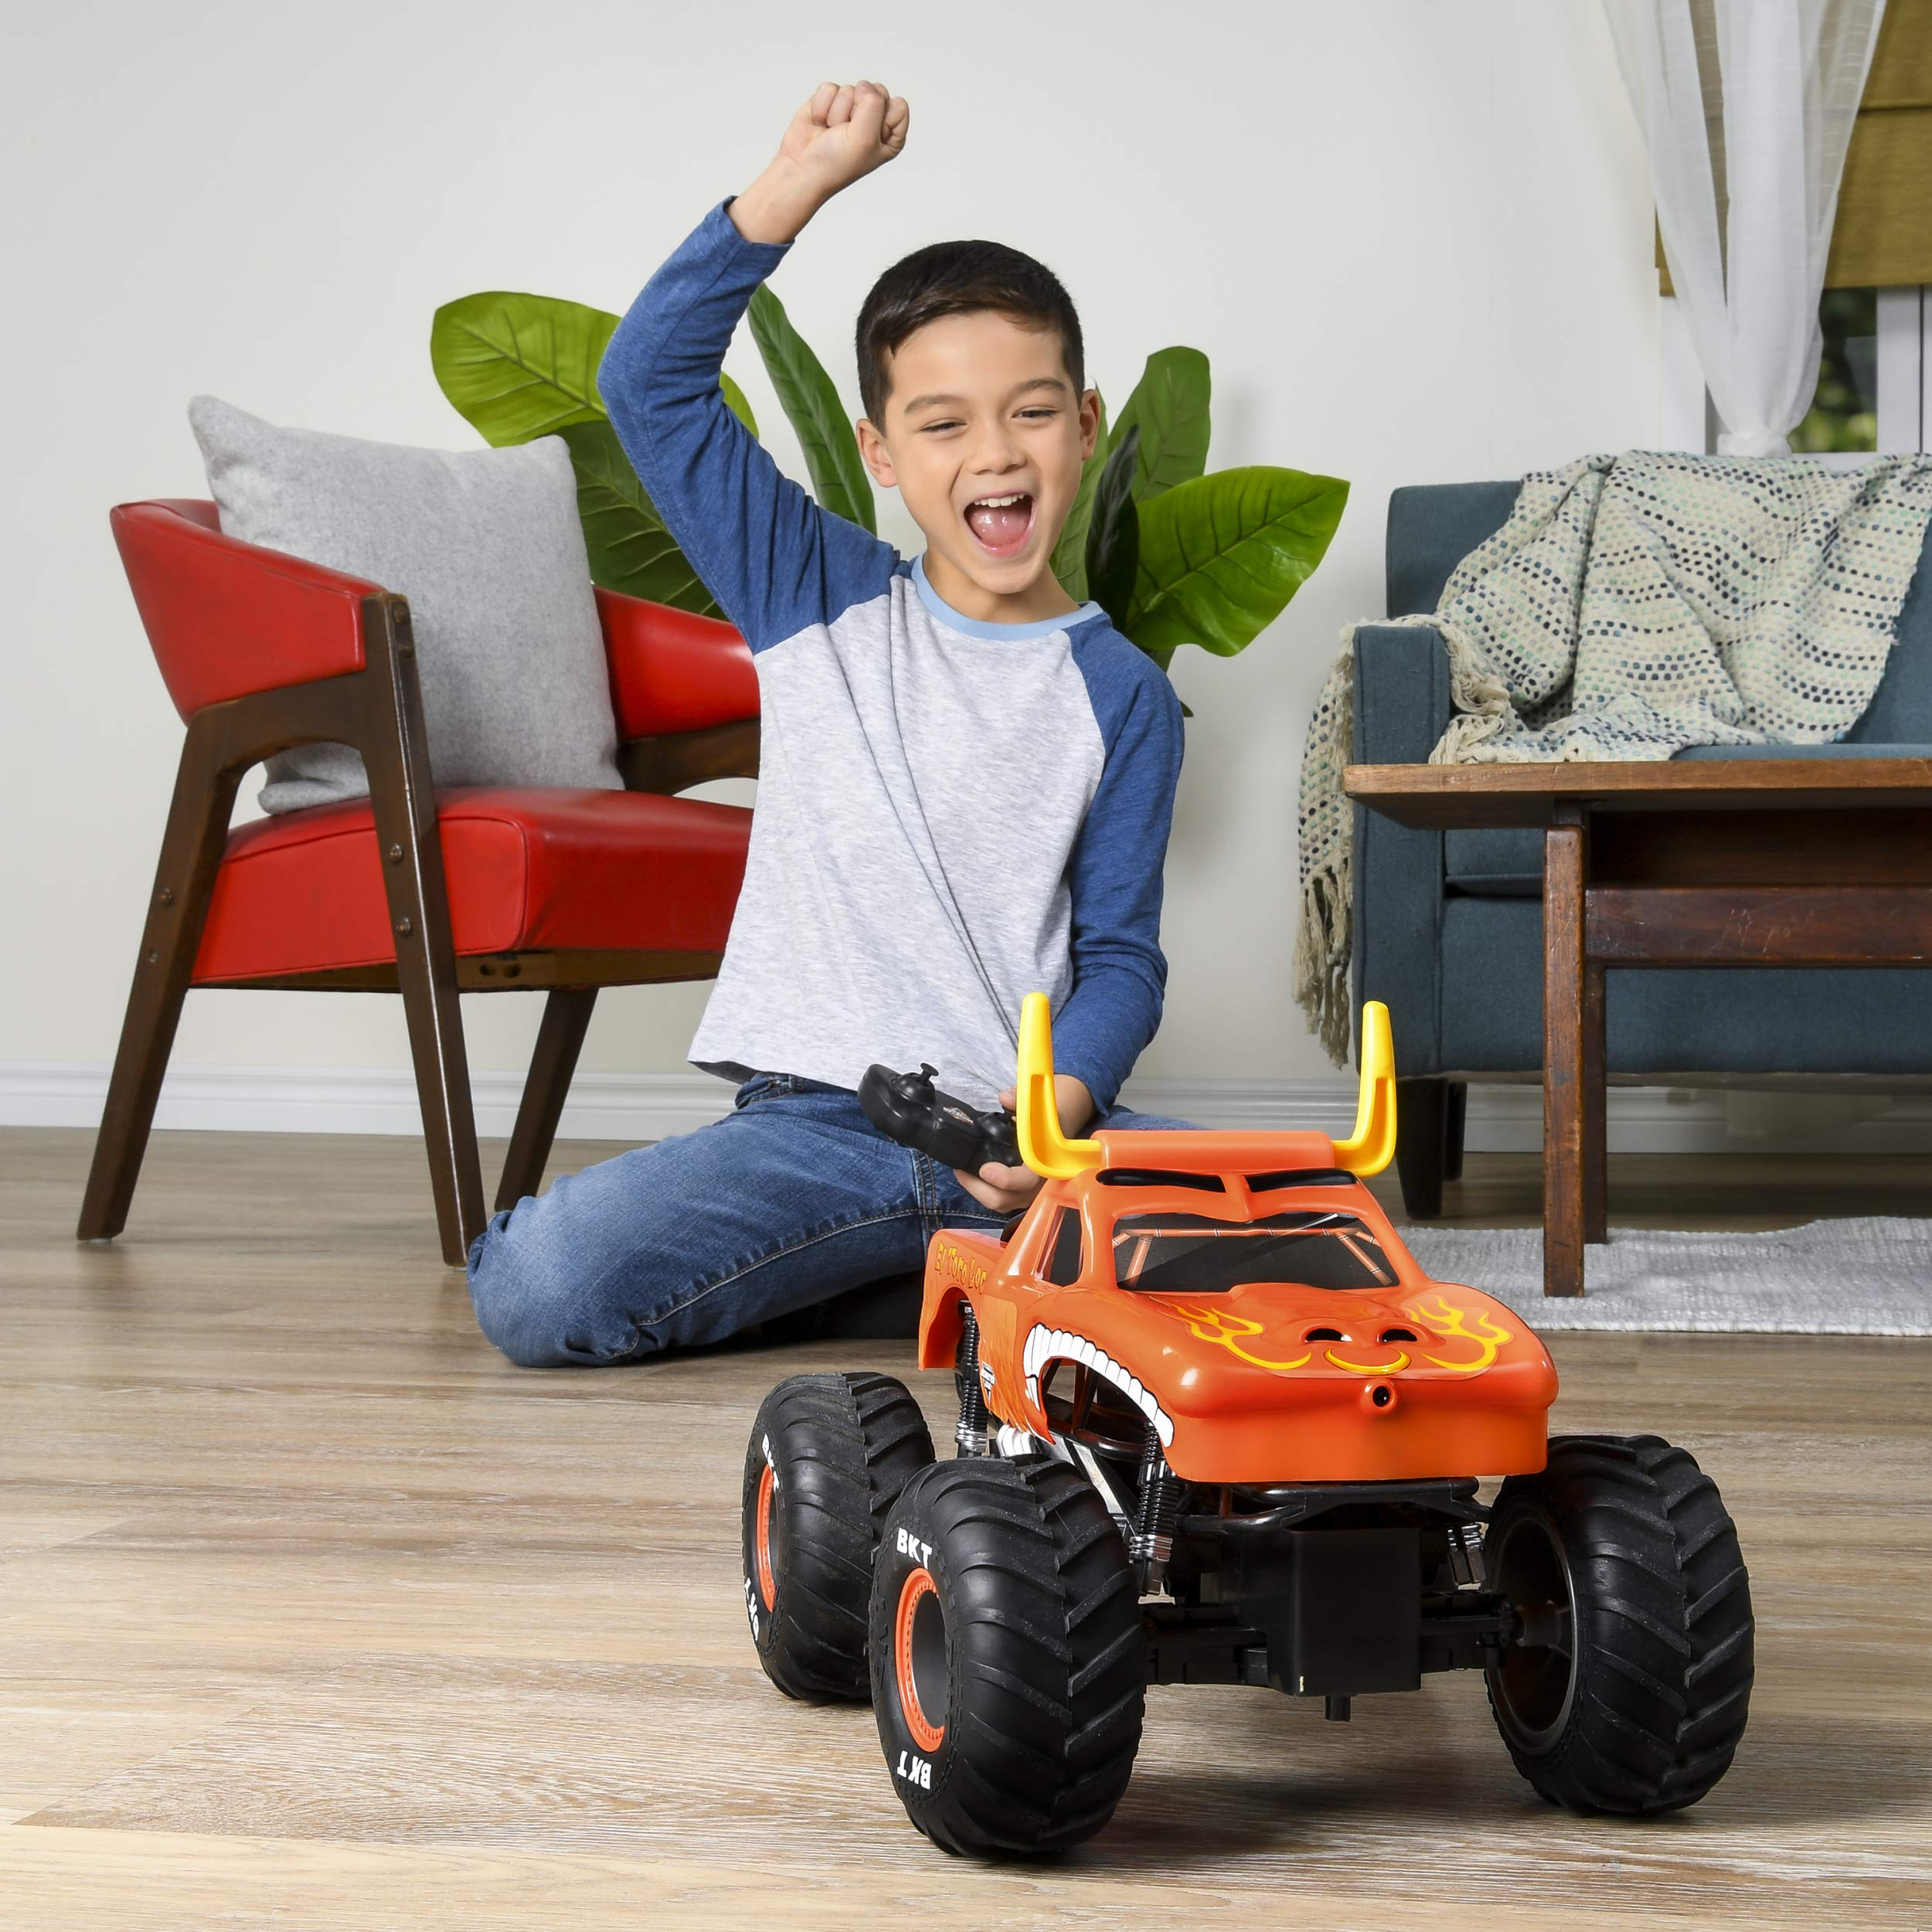 Monster Jam Official El Toro Loco Remote Control Monster Truck, 1:15 Scale, 2.4 GHz by Monster Jam (Image #3)